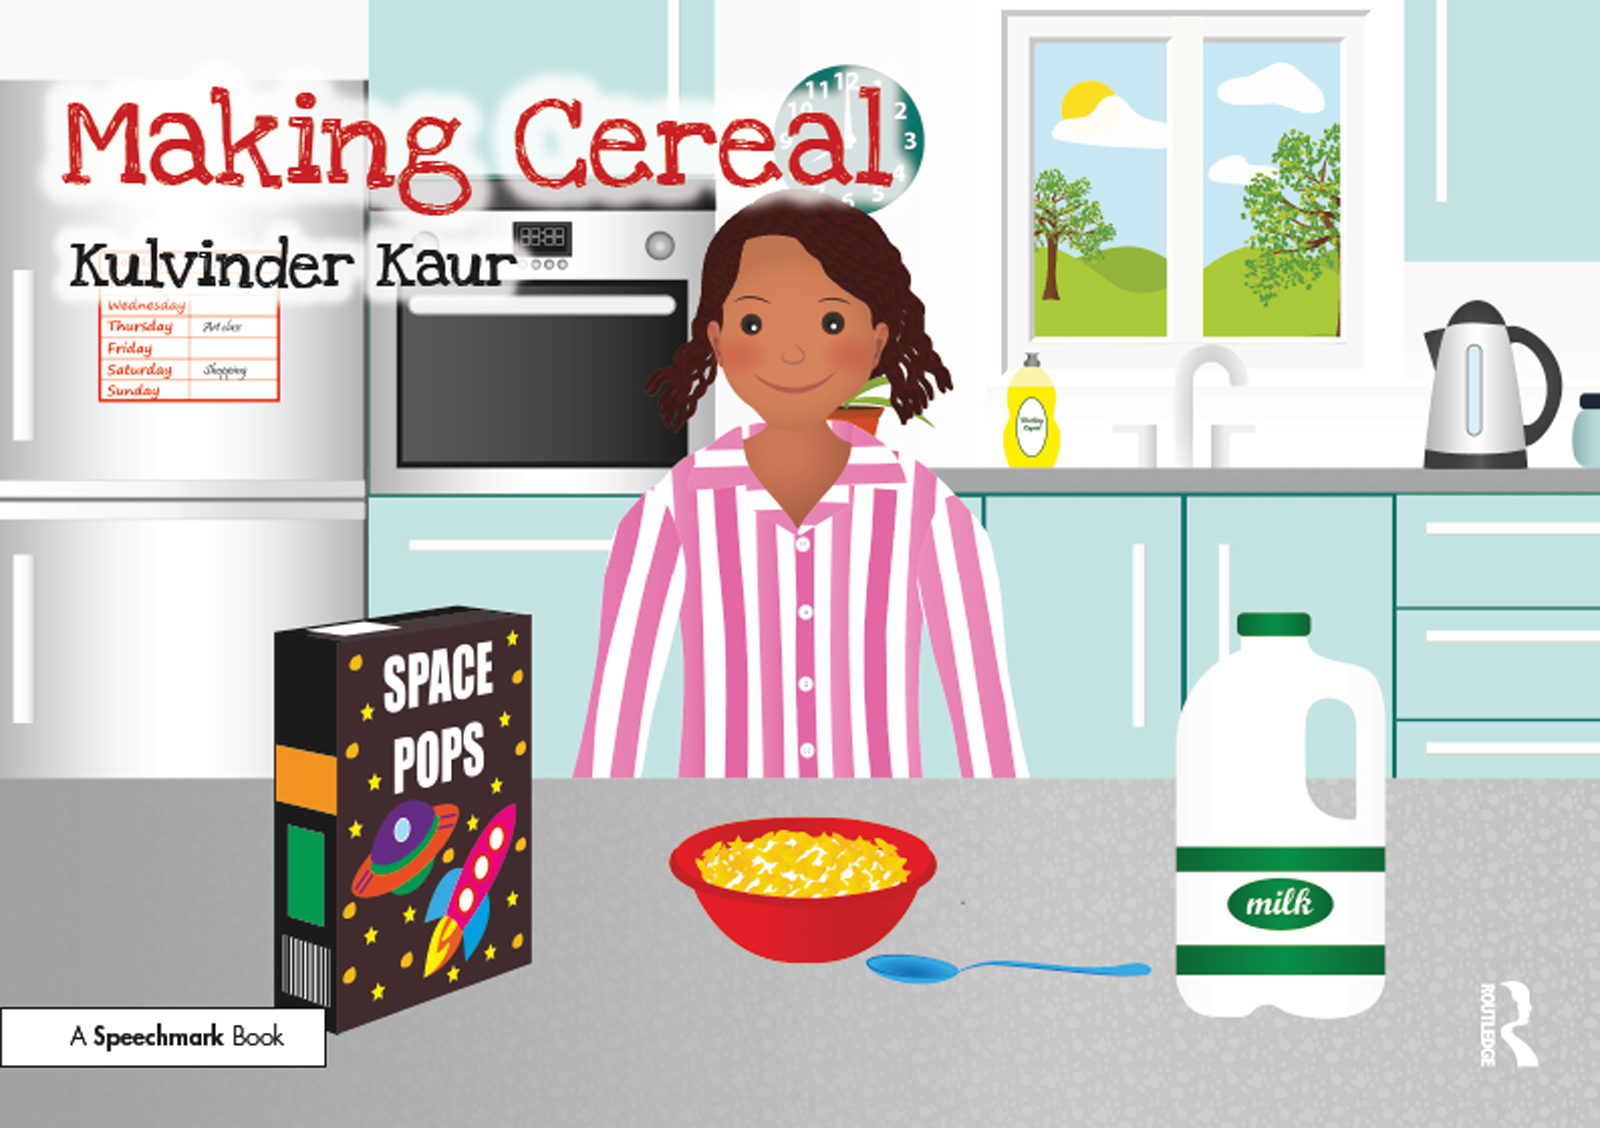 Making Cereal